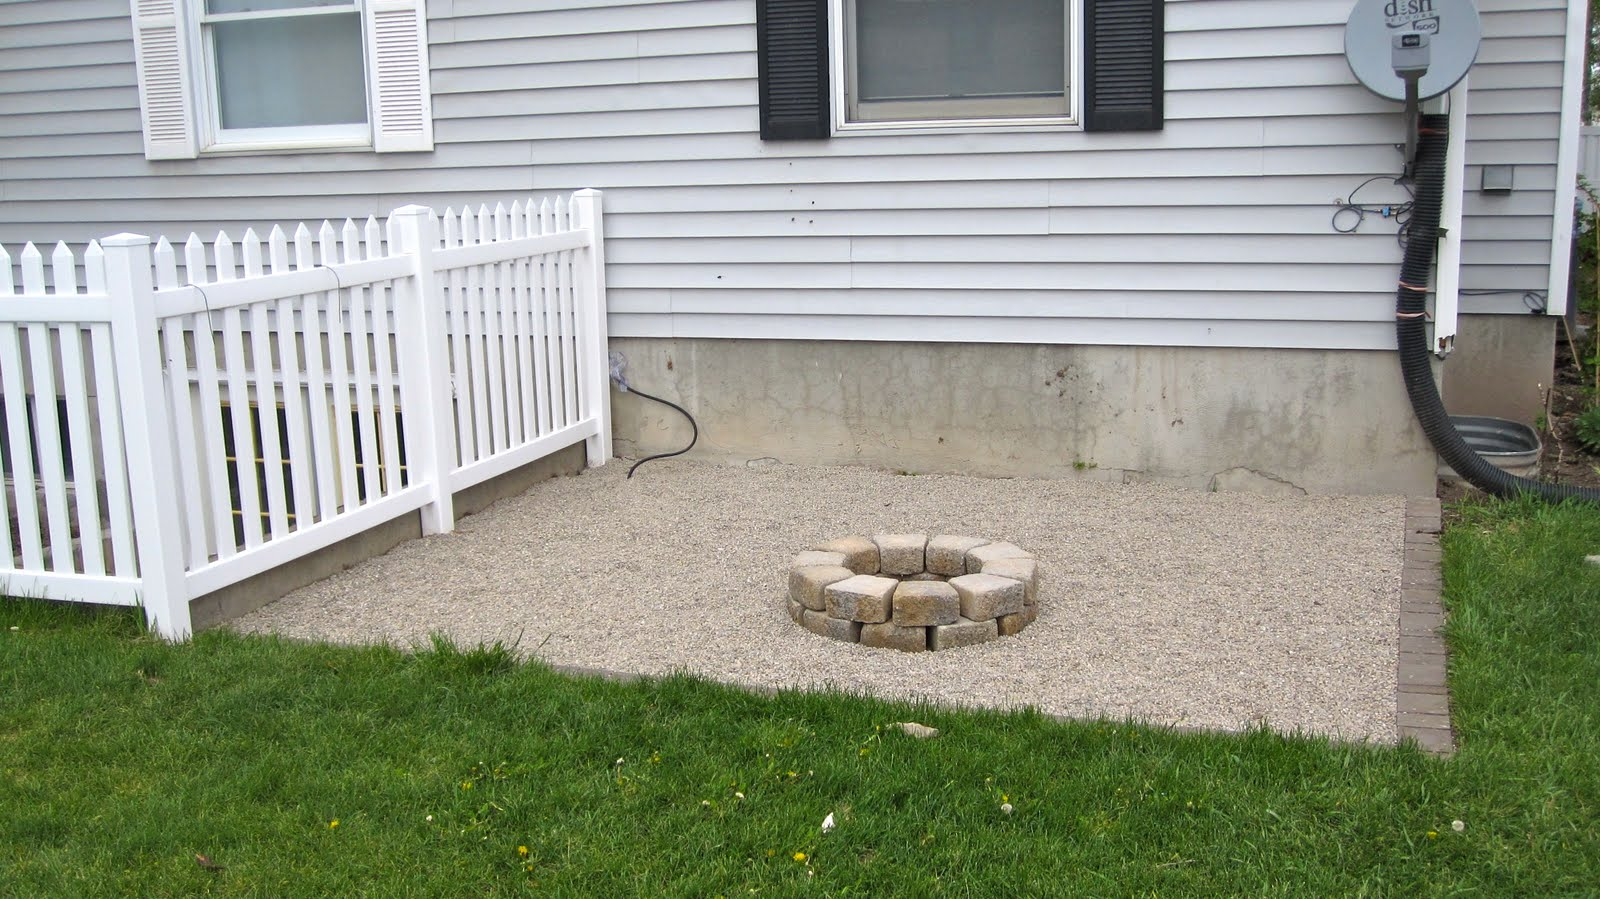 Bird and berry how to make a fire pit on the cheap for Make a fire pit cheap